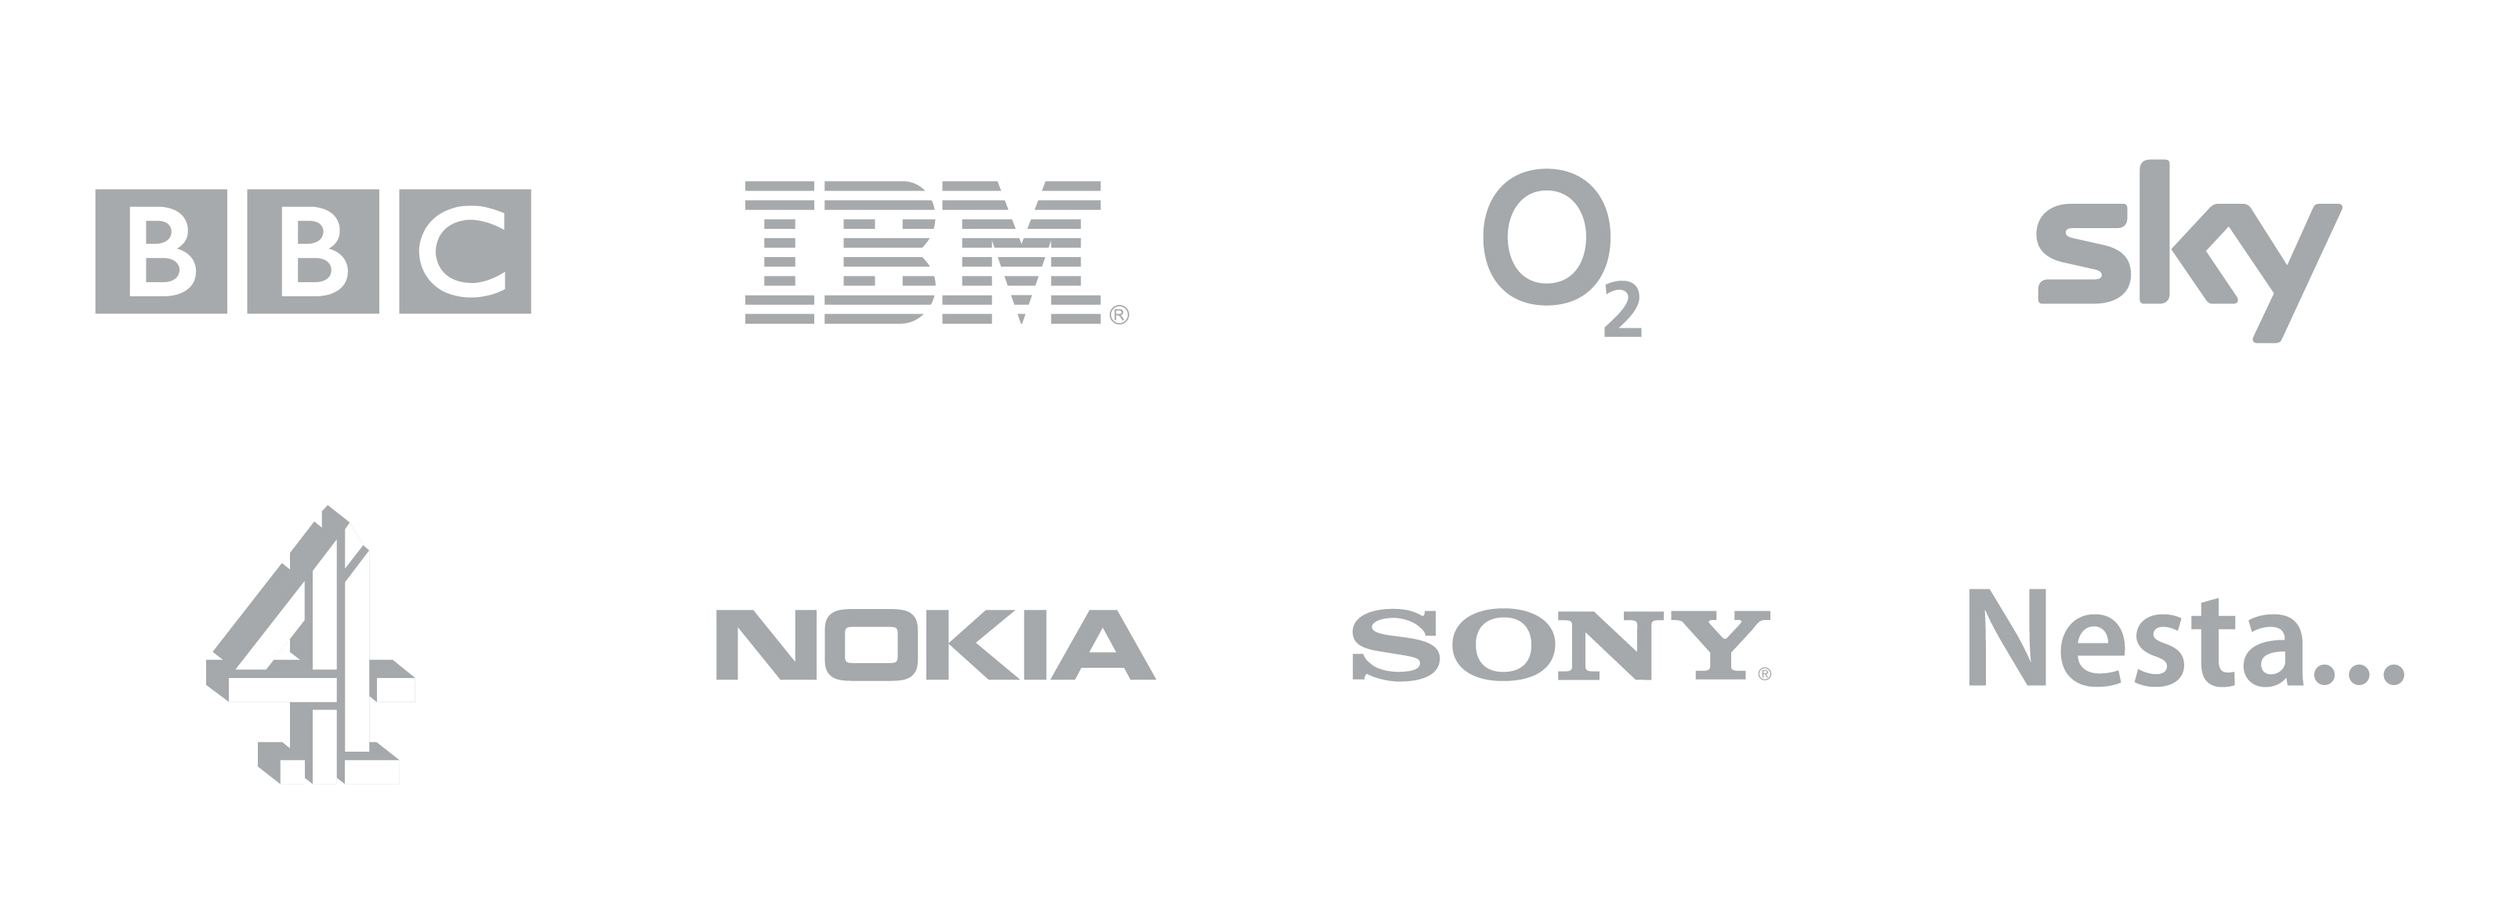 logos section_V2-01.jpg